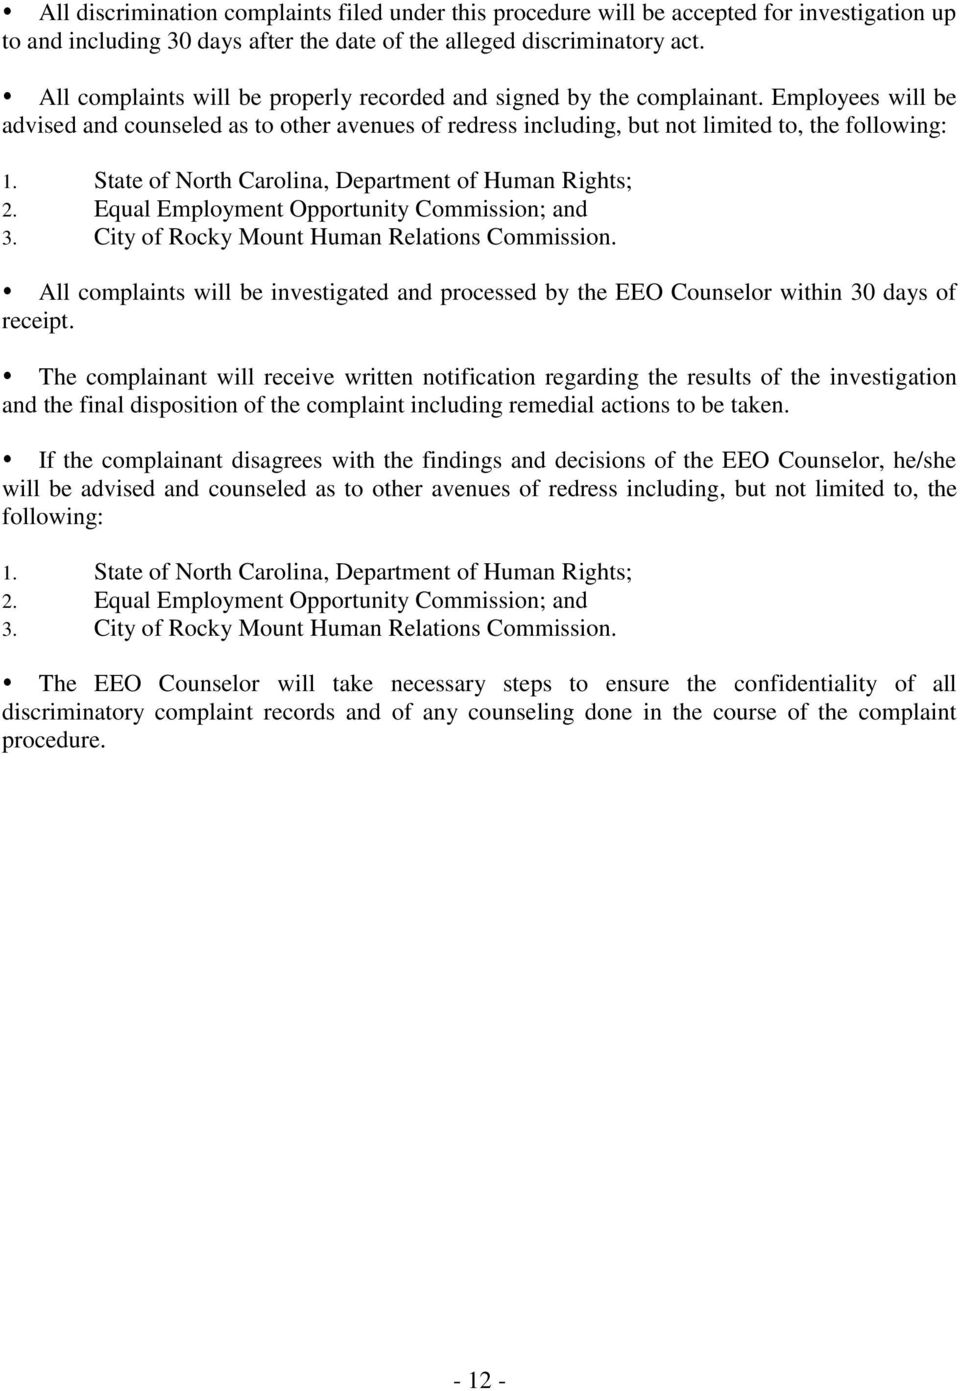 State of North Carolina, Department of Human Rights; 2. Equal Employment Opportunity Commission; and 3. City of Rocky Mount Human Relations Commission.